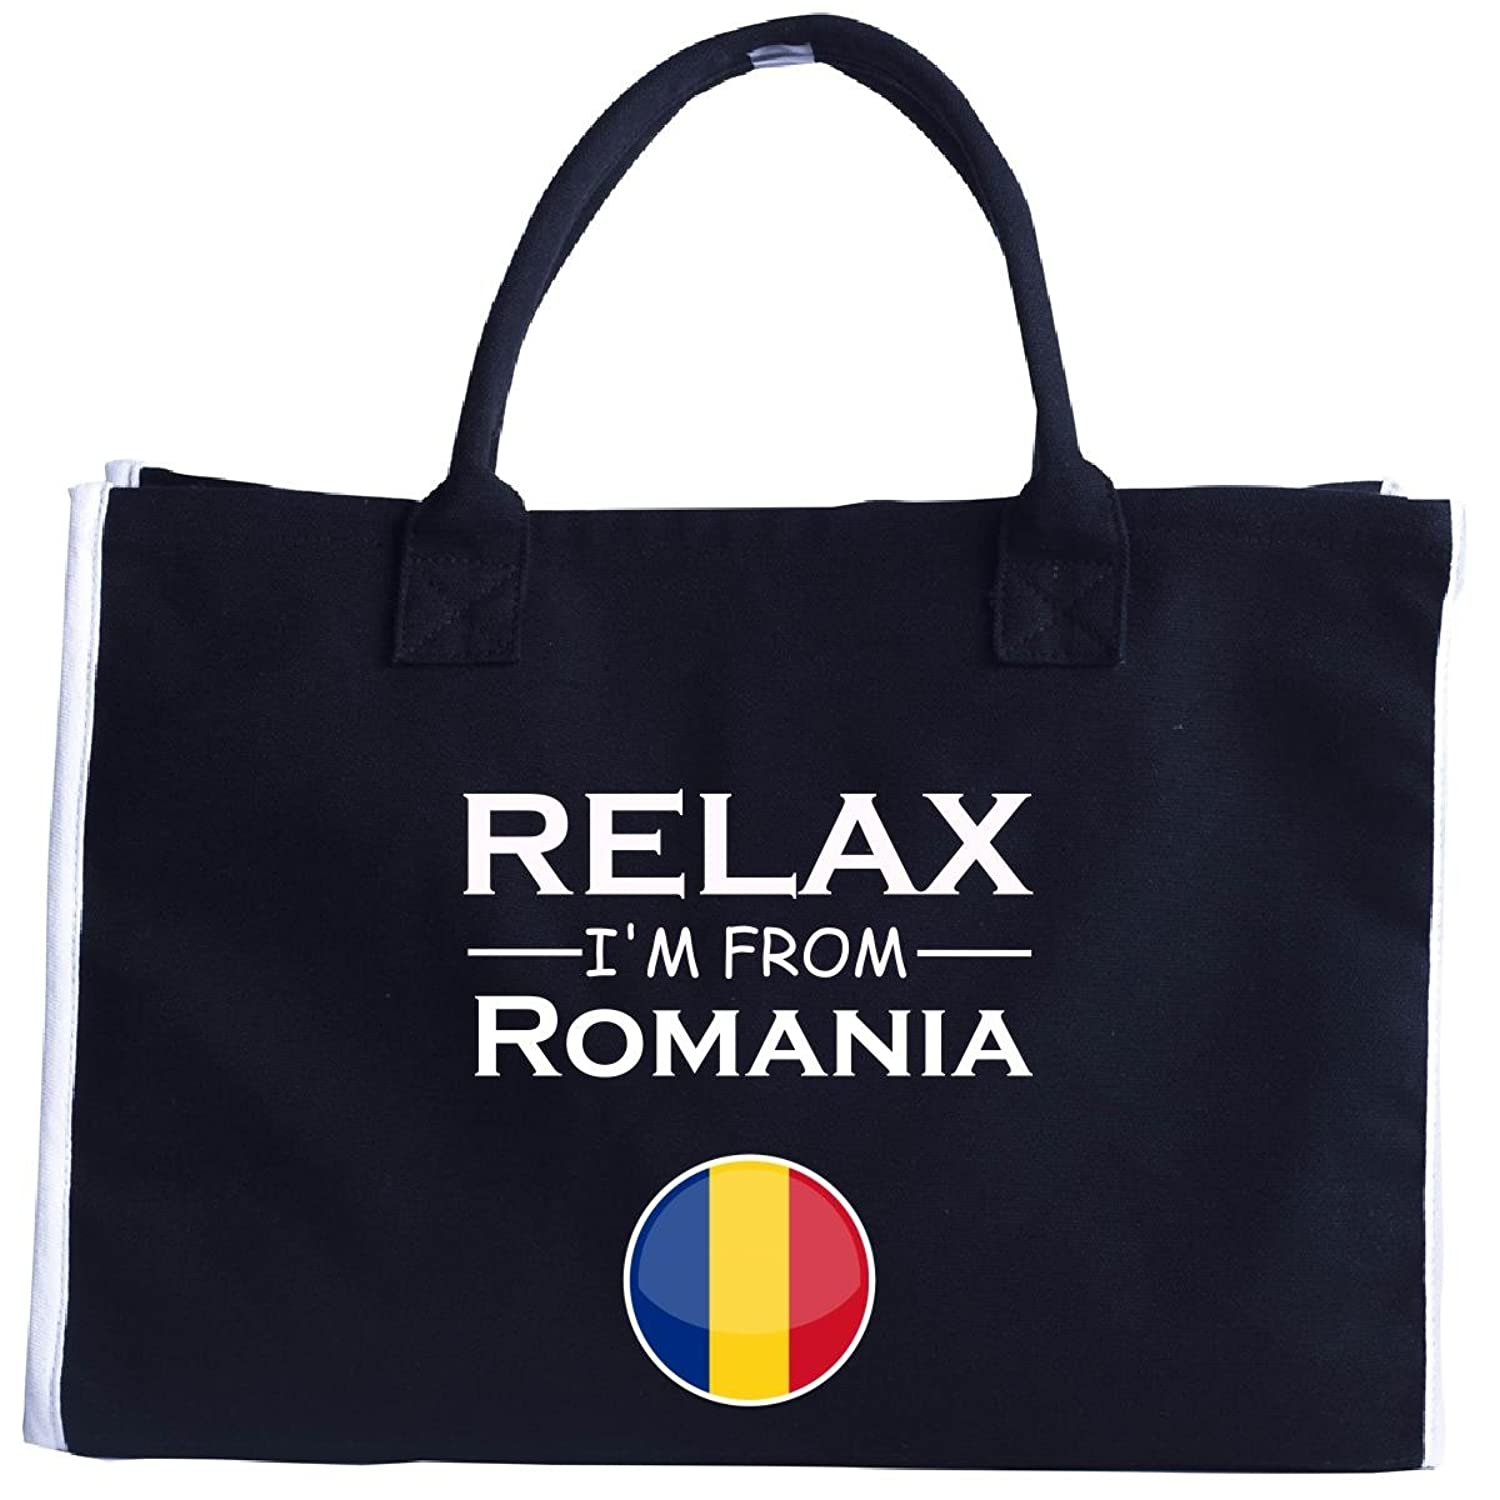 Chill Out And Relax. Im From Romania. Cool Gift Idea - Tote Bag